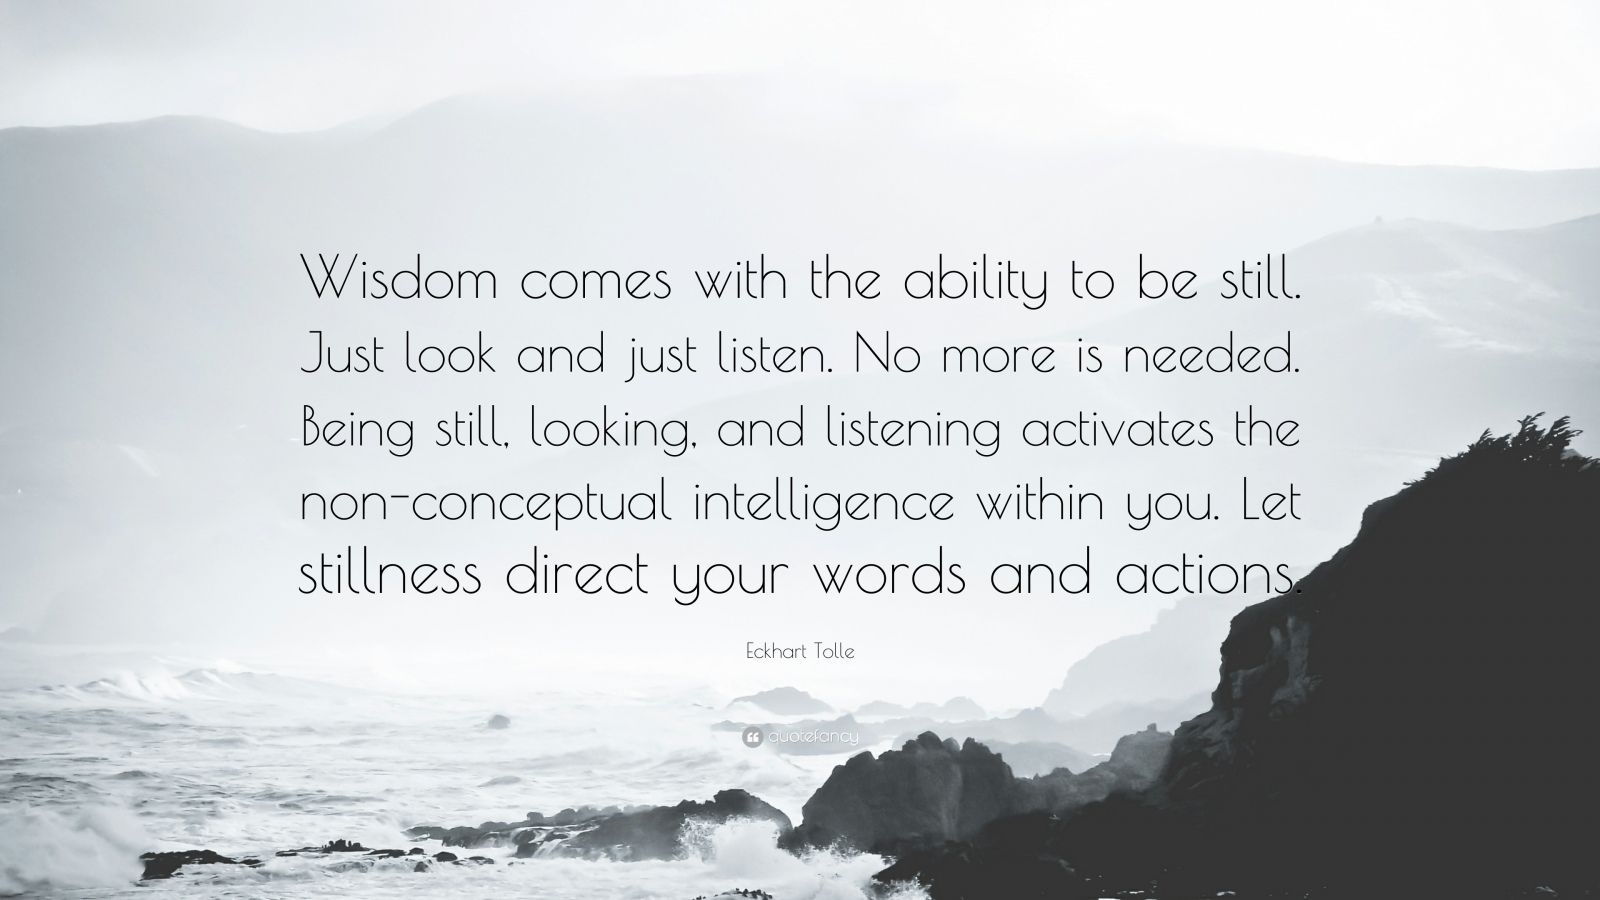 "Eckhart Tolle Quote: ""Wisdom comes with the ability to be still. Just look and just listen. No more is needed. Being still, looking, and listening activates the non-conceptual intelligence within you. Let stillness direct your words and actions."""